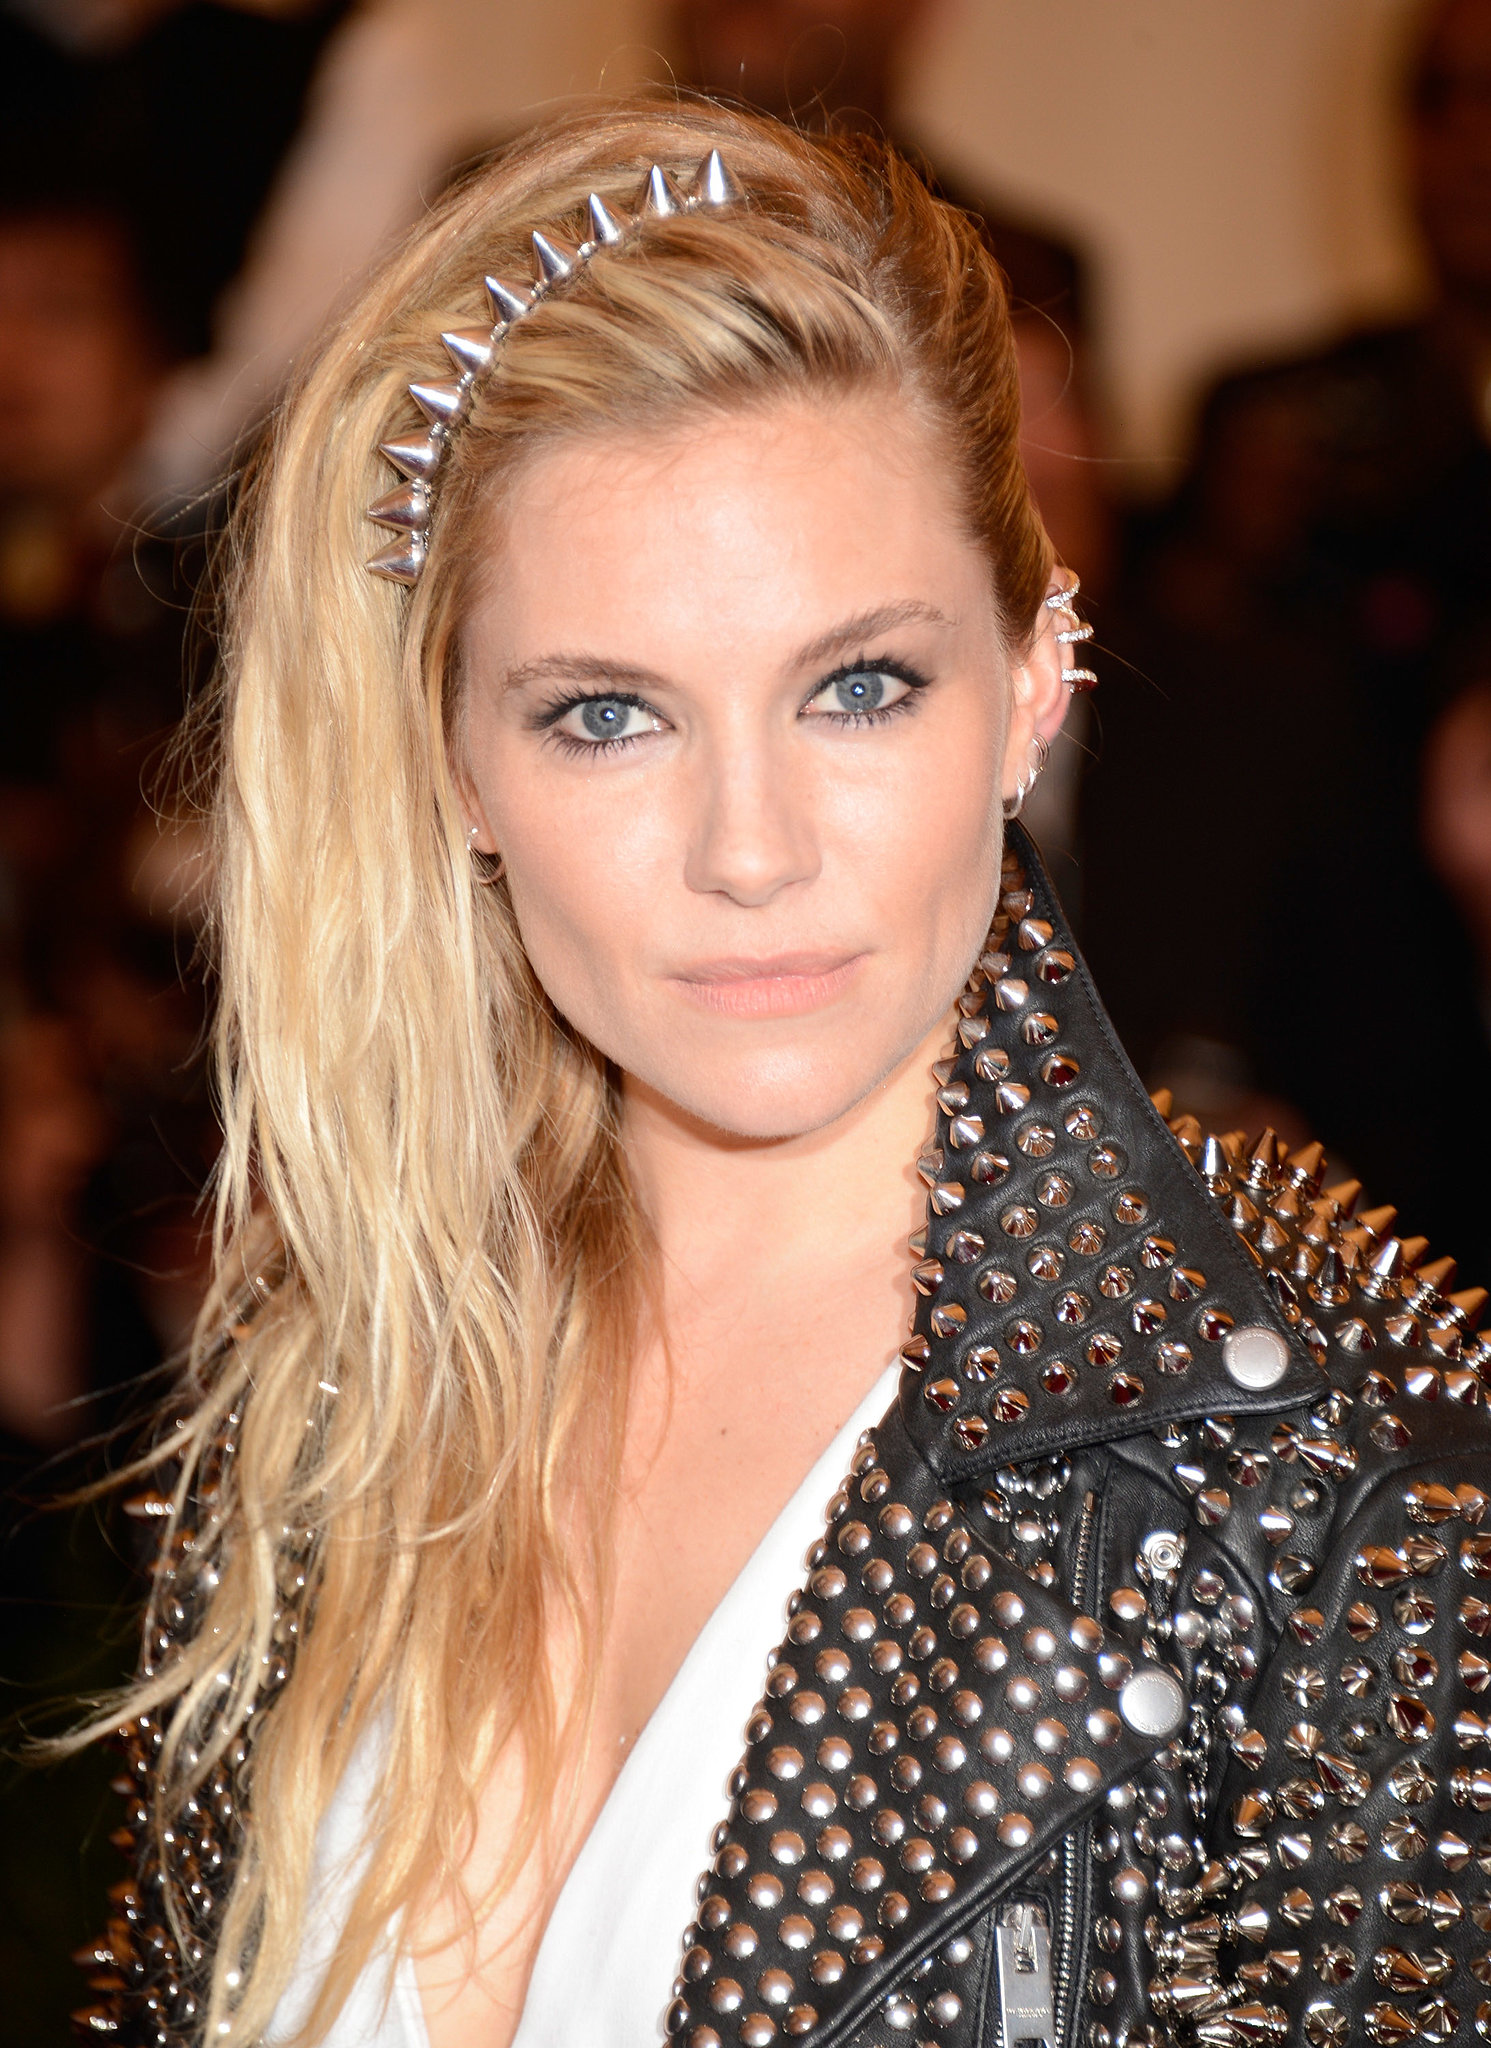 Sienna Miller's bedhead beach waves were beautifully embellished with a spiked headband.